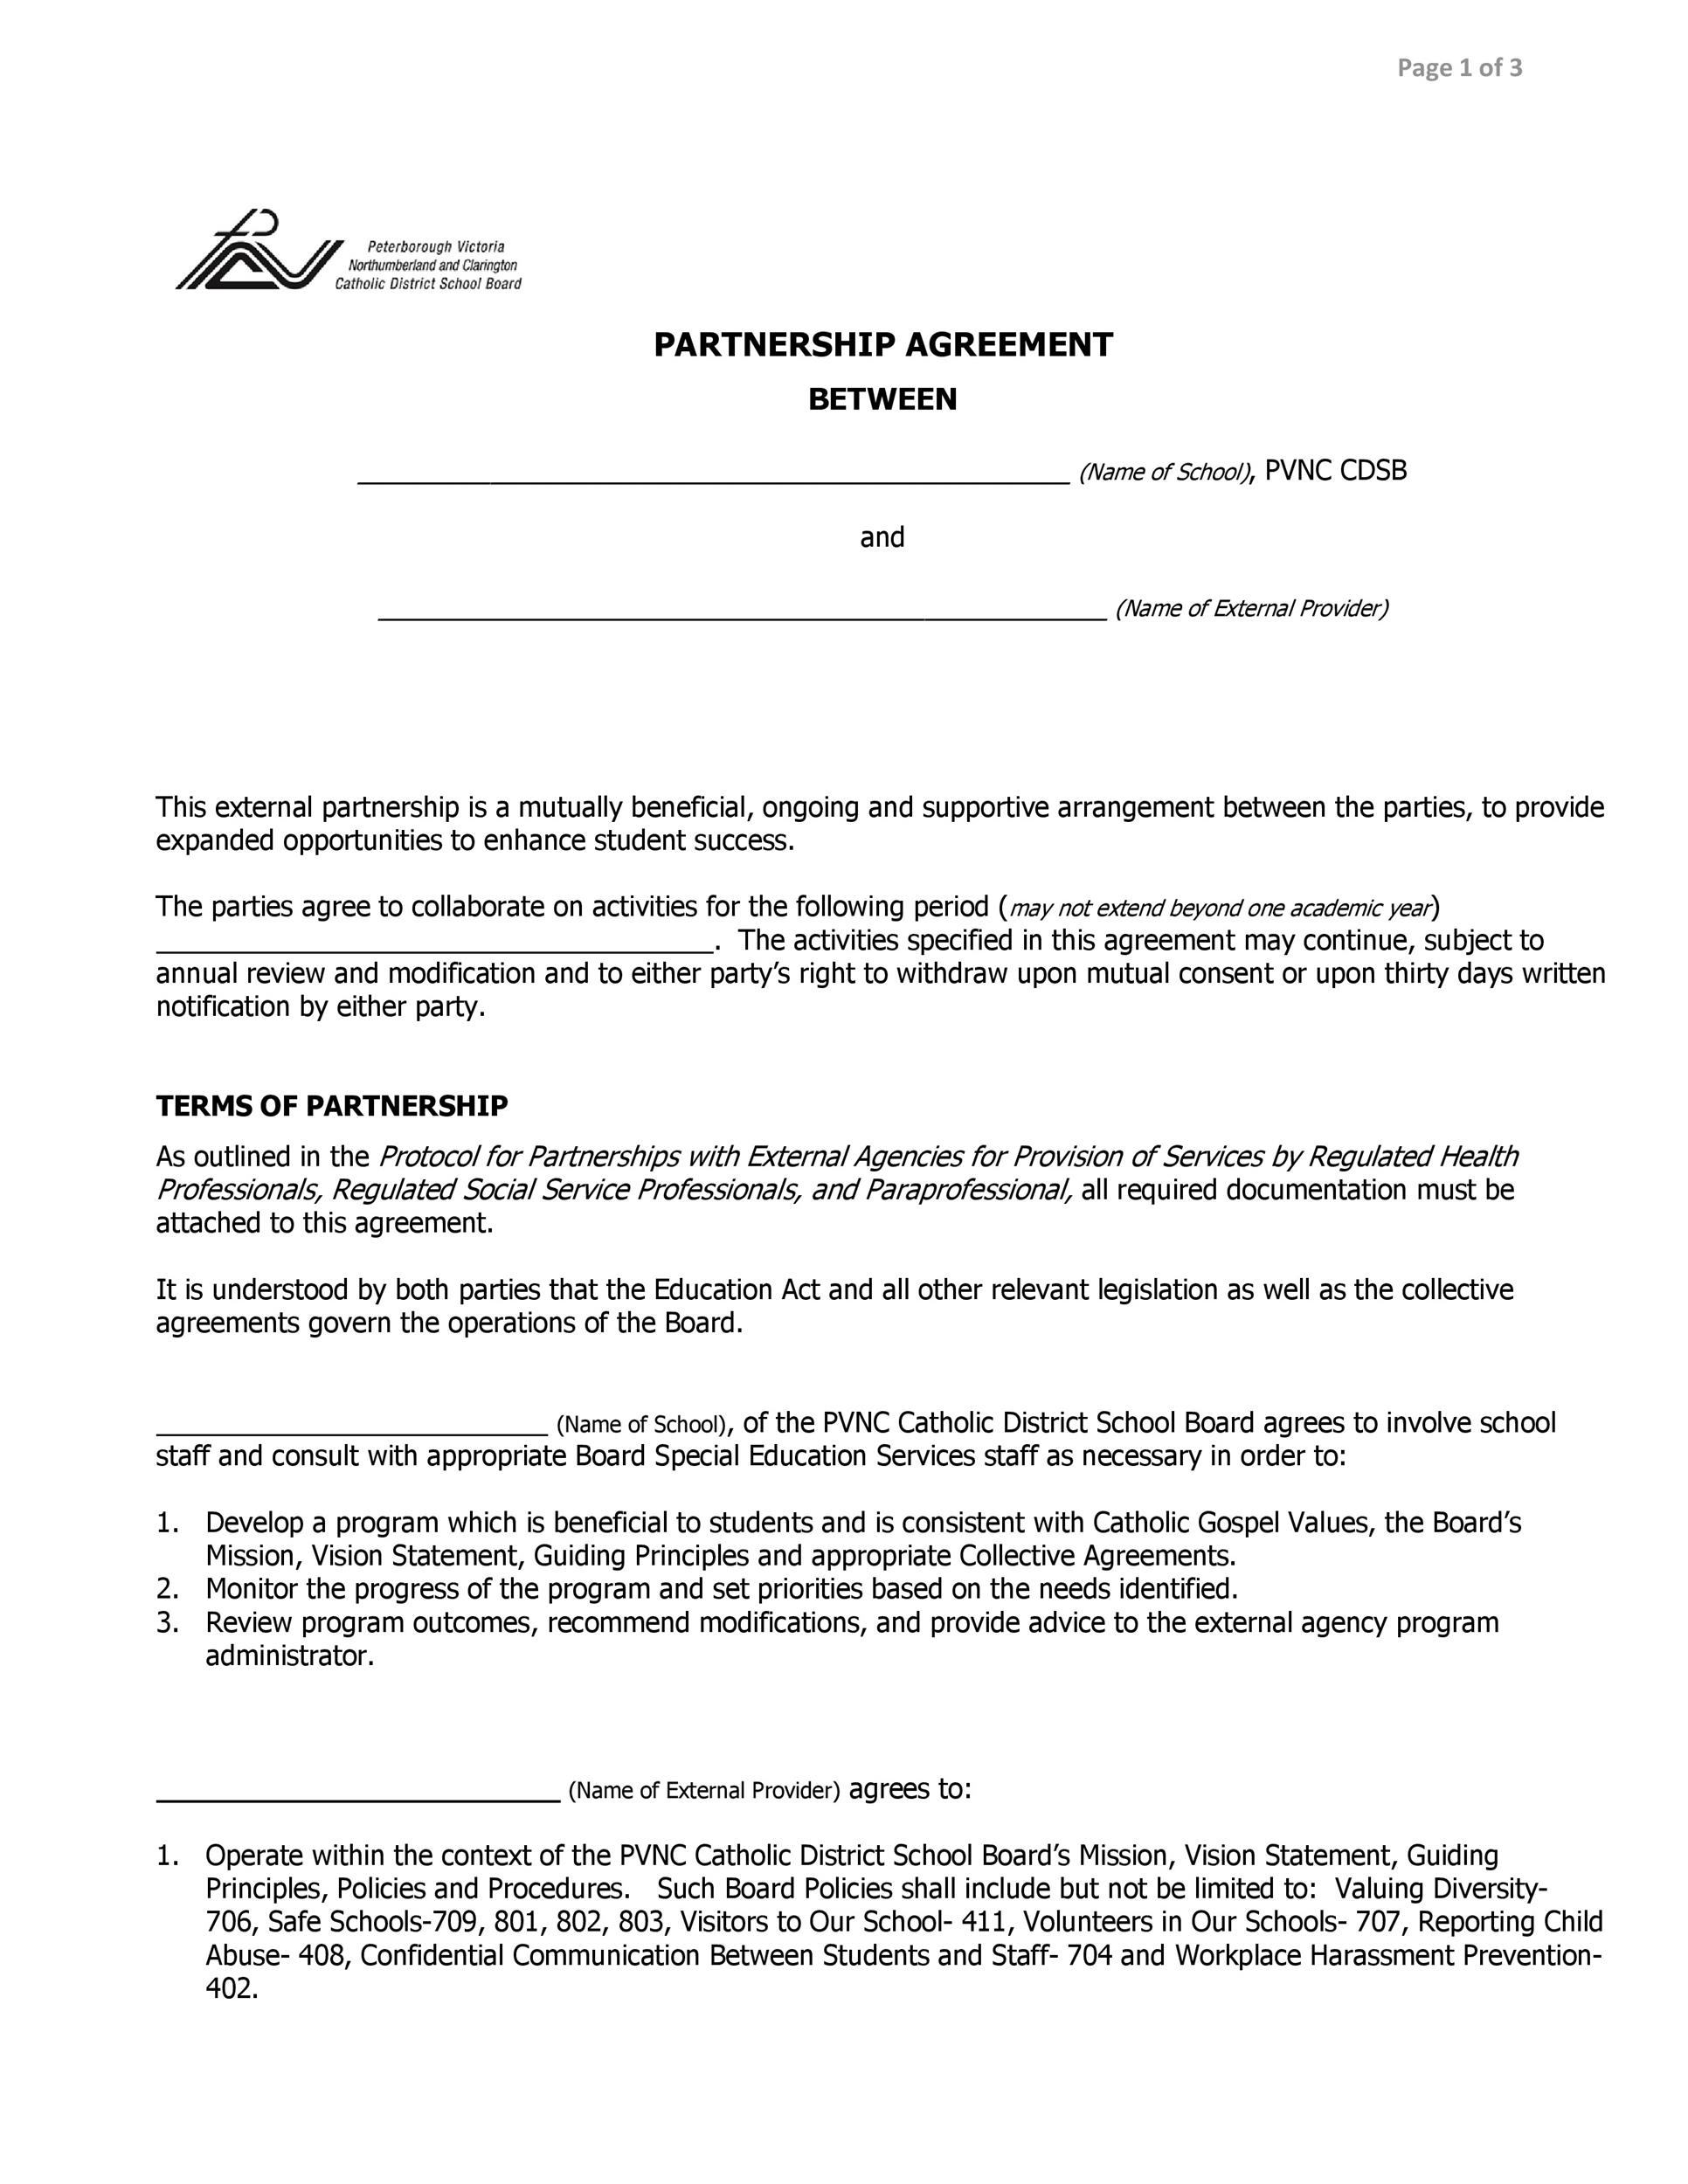 Partnership Agreement Template 31